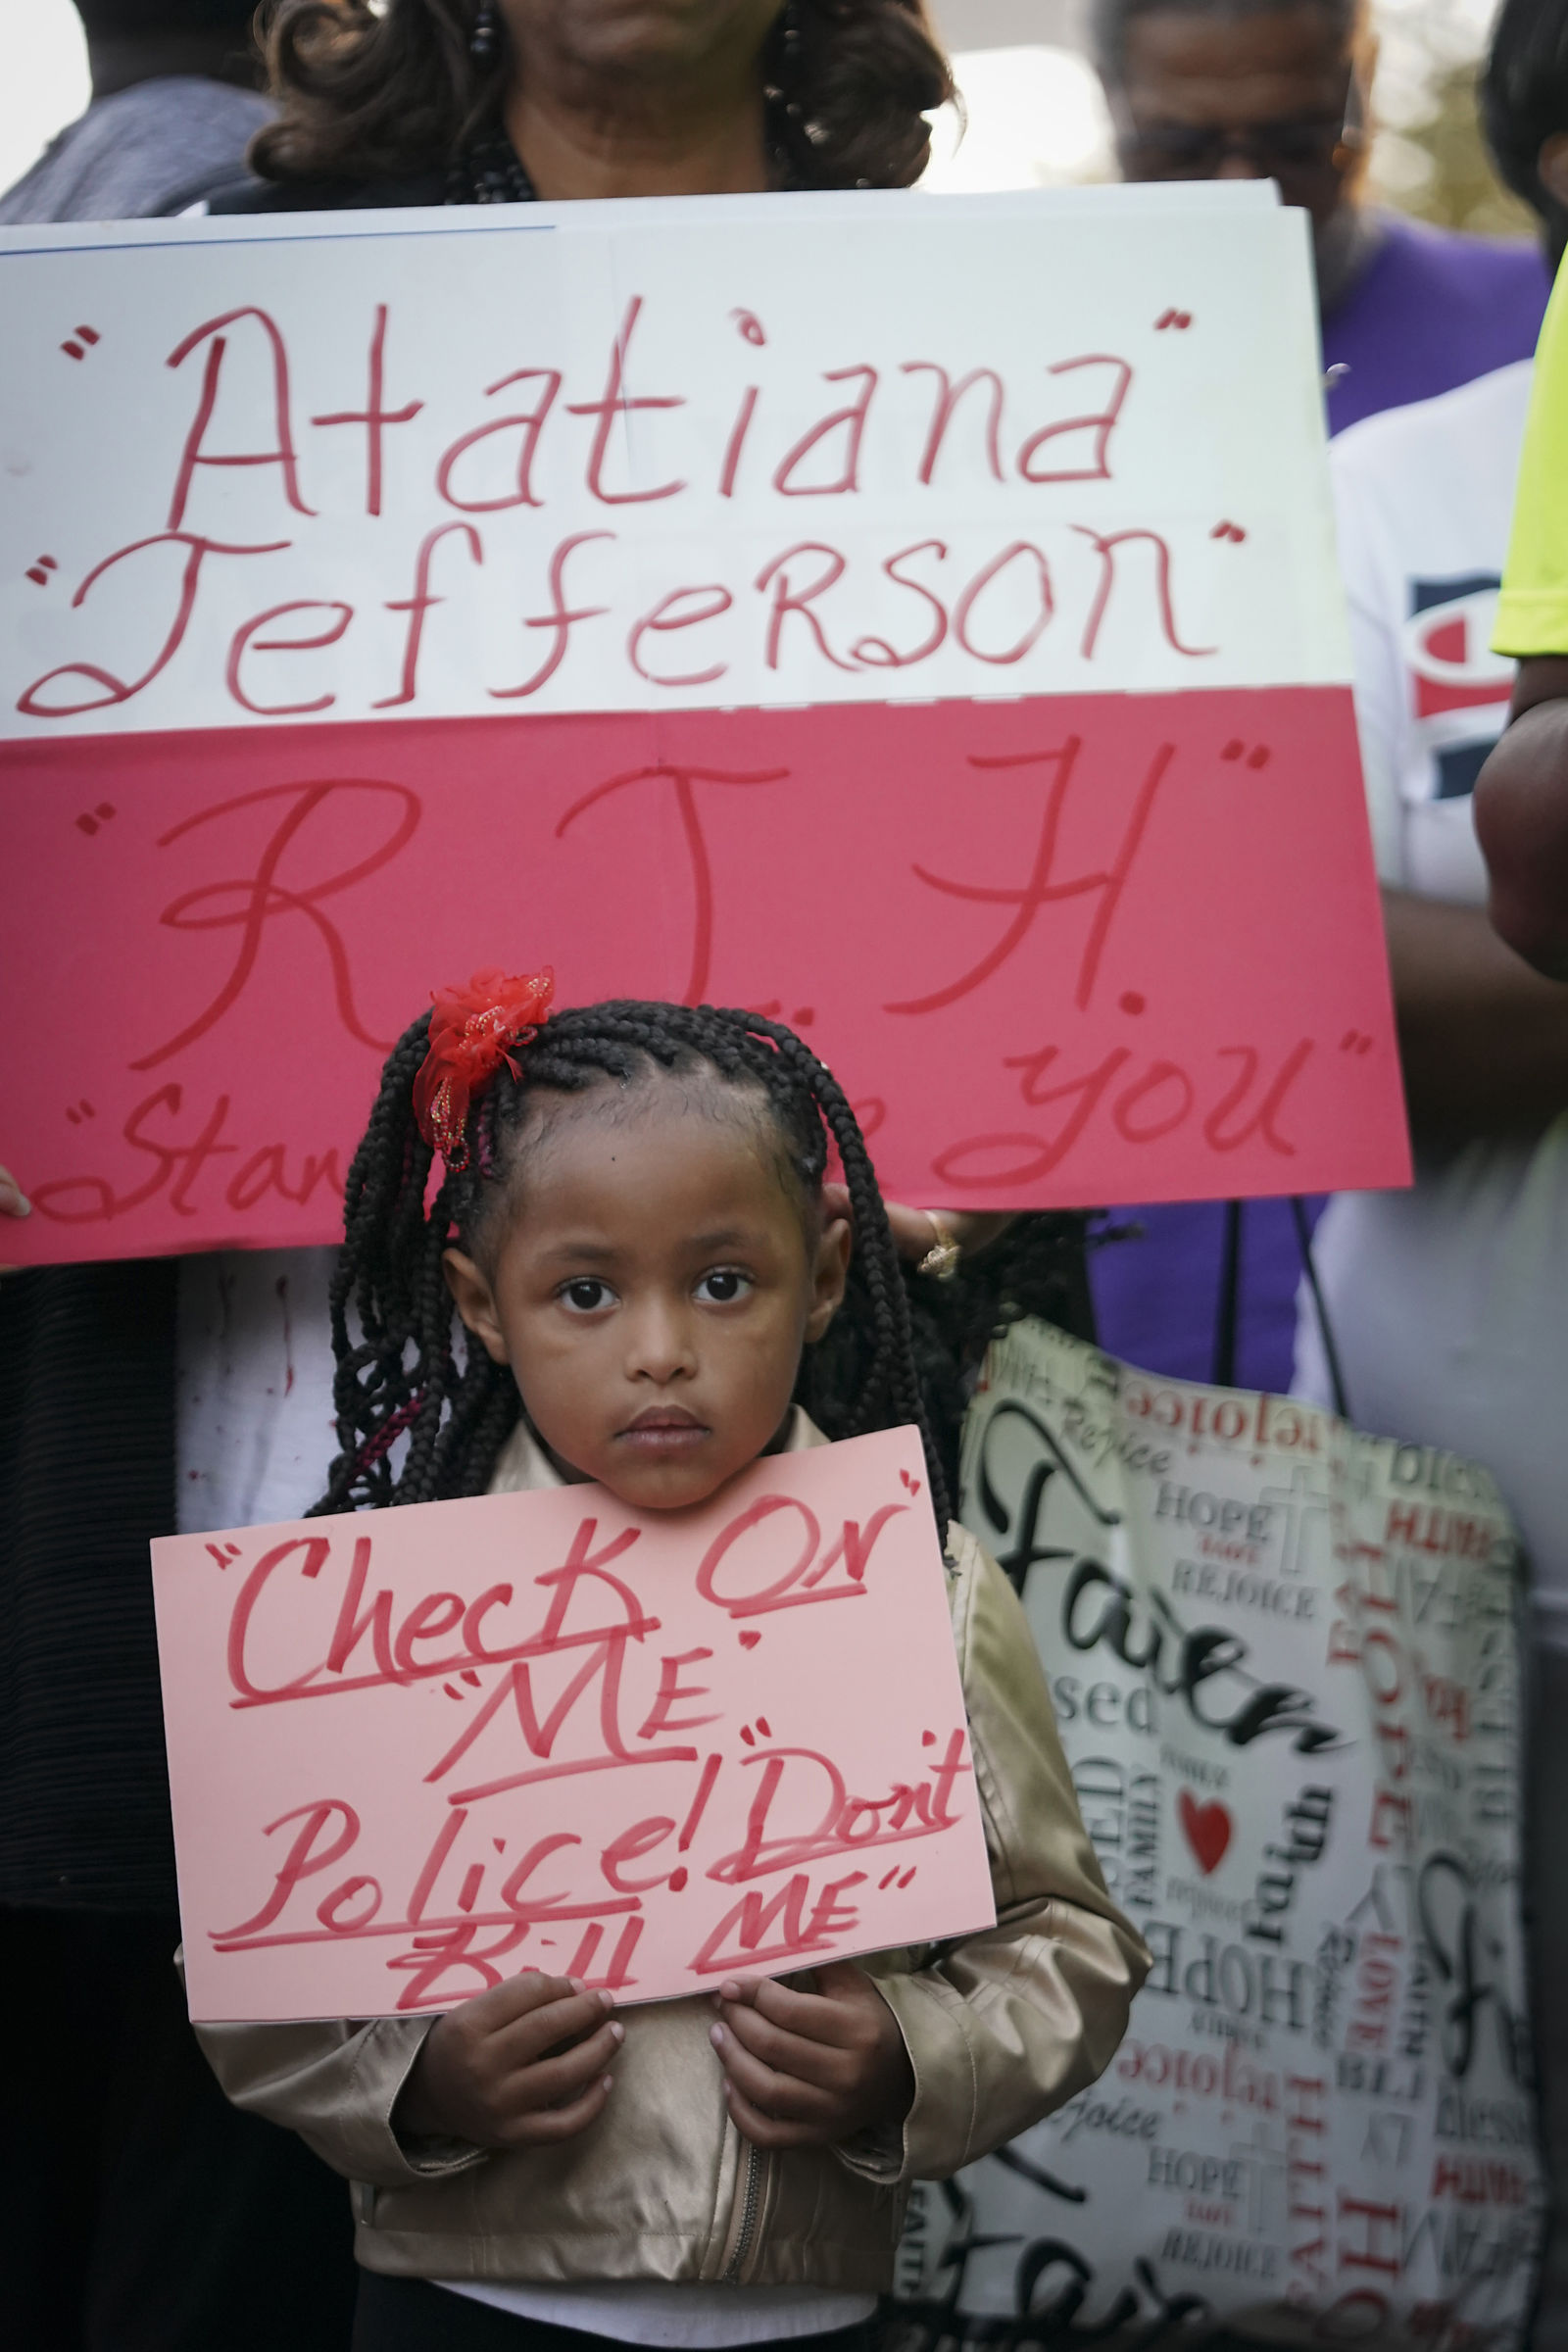 "Trinity Ford, 4, joins the crowd gathered during a community vigil for Atatiana Jefferson on Sunday, Oct. 13, 2019, in Fort Worth, Texas. A white police officer who killed the black woman inside her Texas home while responding to a neighbor's call about an open front door ""didn't have time to perceive a threat"" before he opened fire, an attorney for Jefferson's family said. (Smiley N. Pool/The Dallas Morning News via AP)"